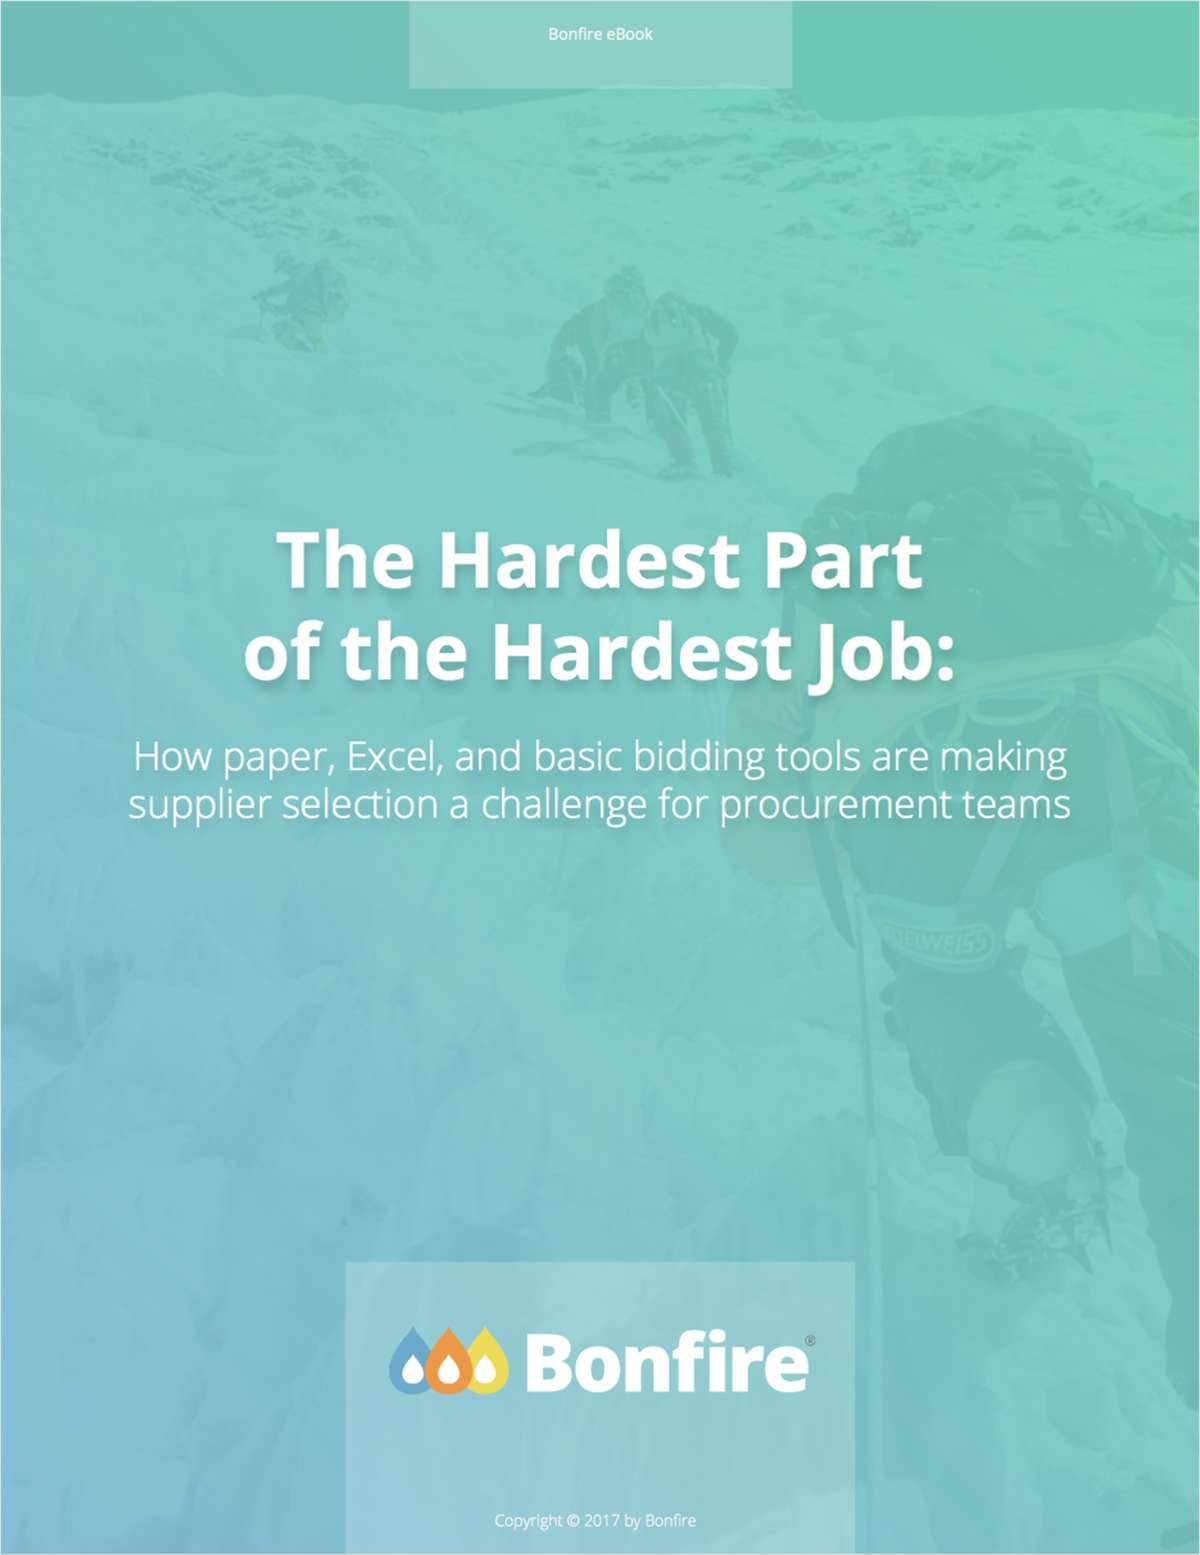 The Hardest Part of the Hardest Job: How Paper, Excel, and Basic Bidding Tools are Making Supplier Selection a Challenge for Procurement Leaders